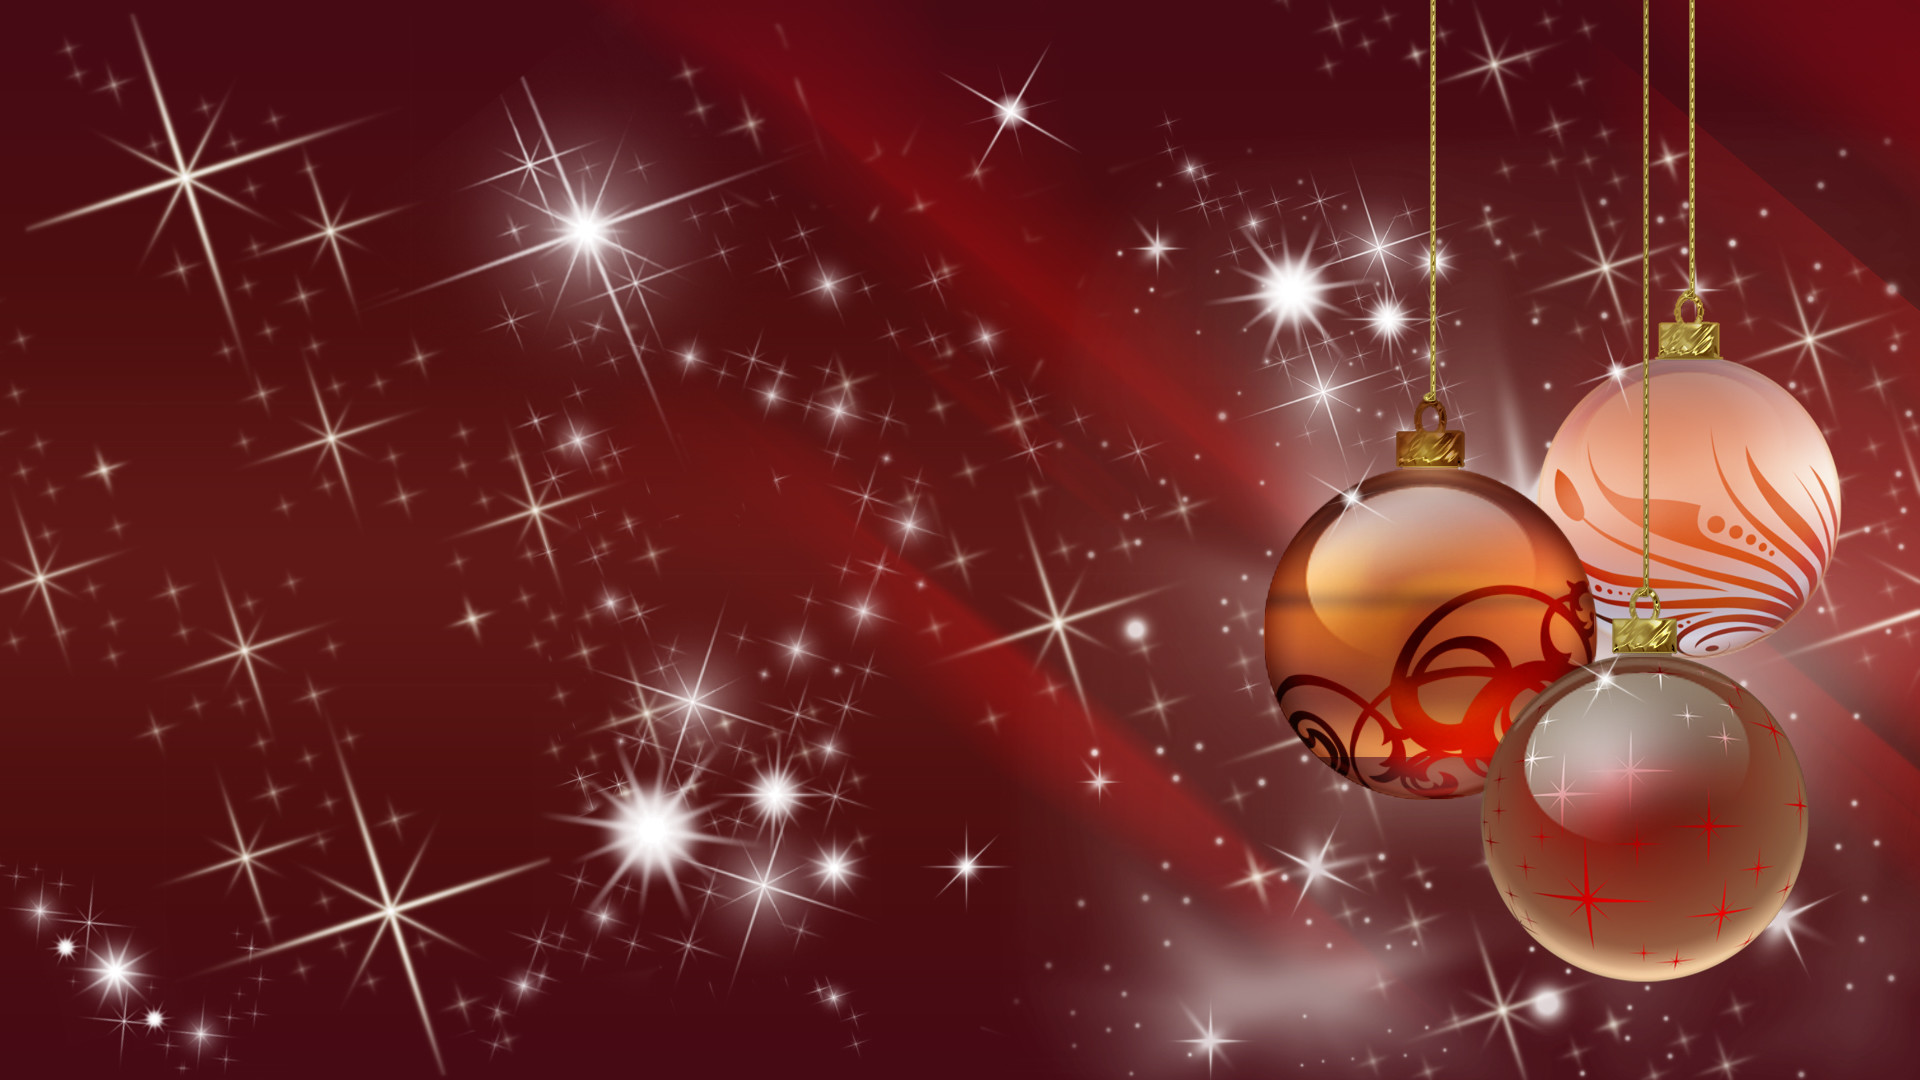 Free Christmas Wallpaper For Phones 18252 HD Wallpapers